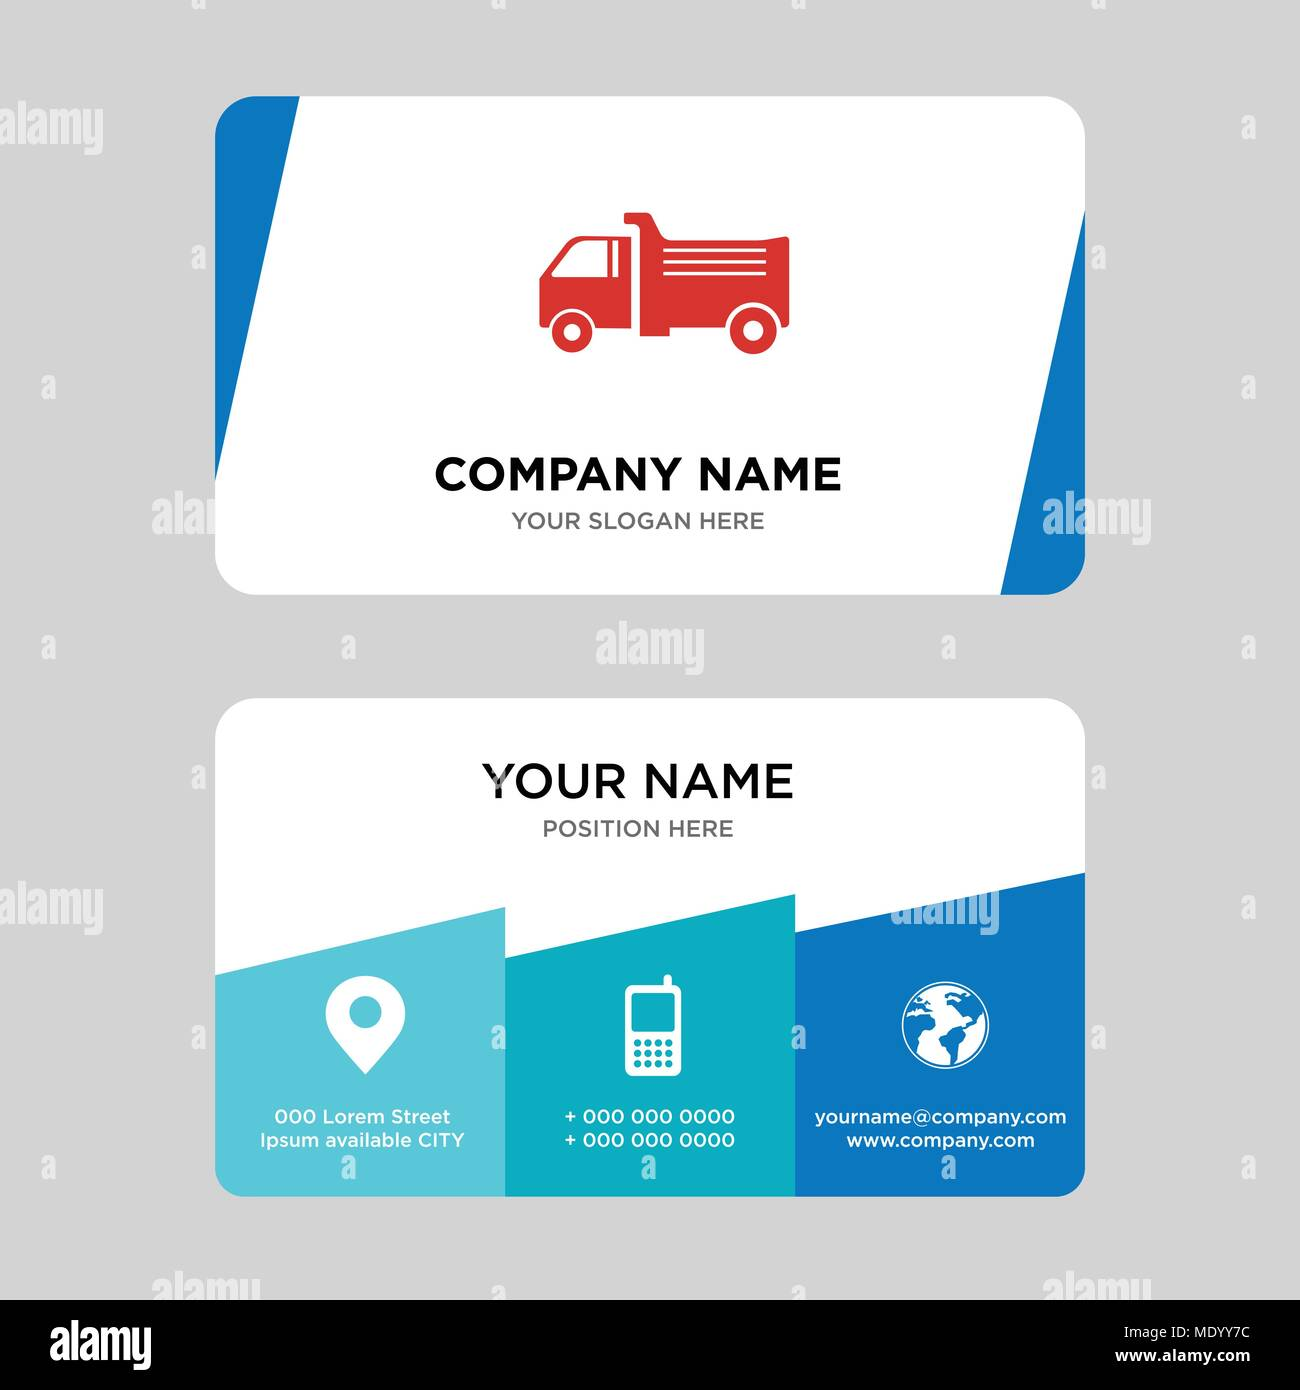 Tractor business card design template visiting for your company tractor business card design template visiting for your company modern creative and clean identity card vector illustration colourmoves